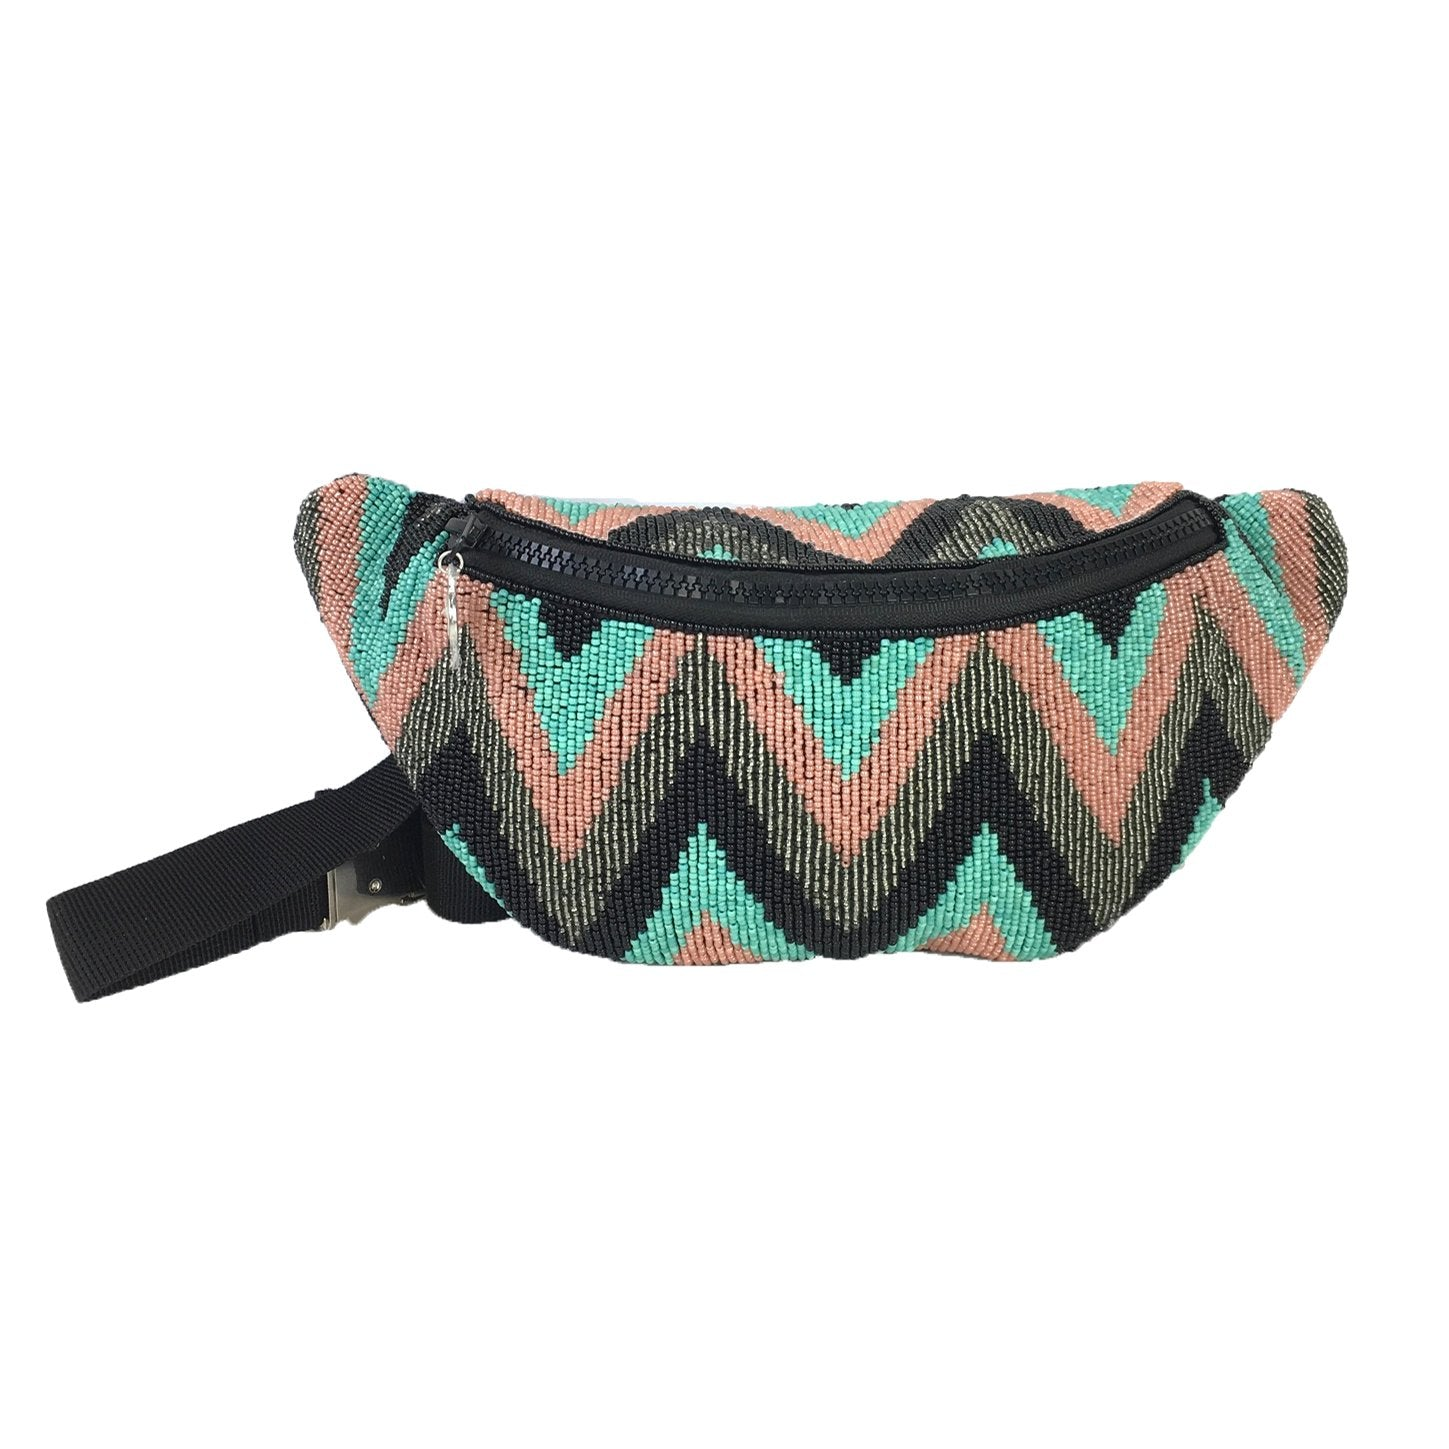 From St Xavier Dara Beaded Waist Pack Fanny Belt Bag, Black/Turquoise